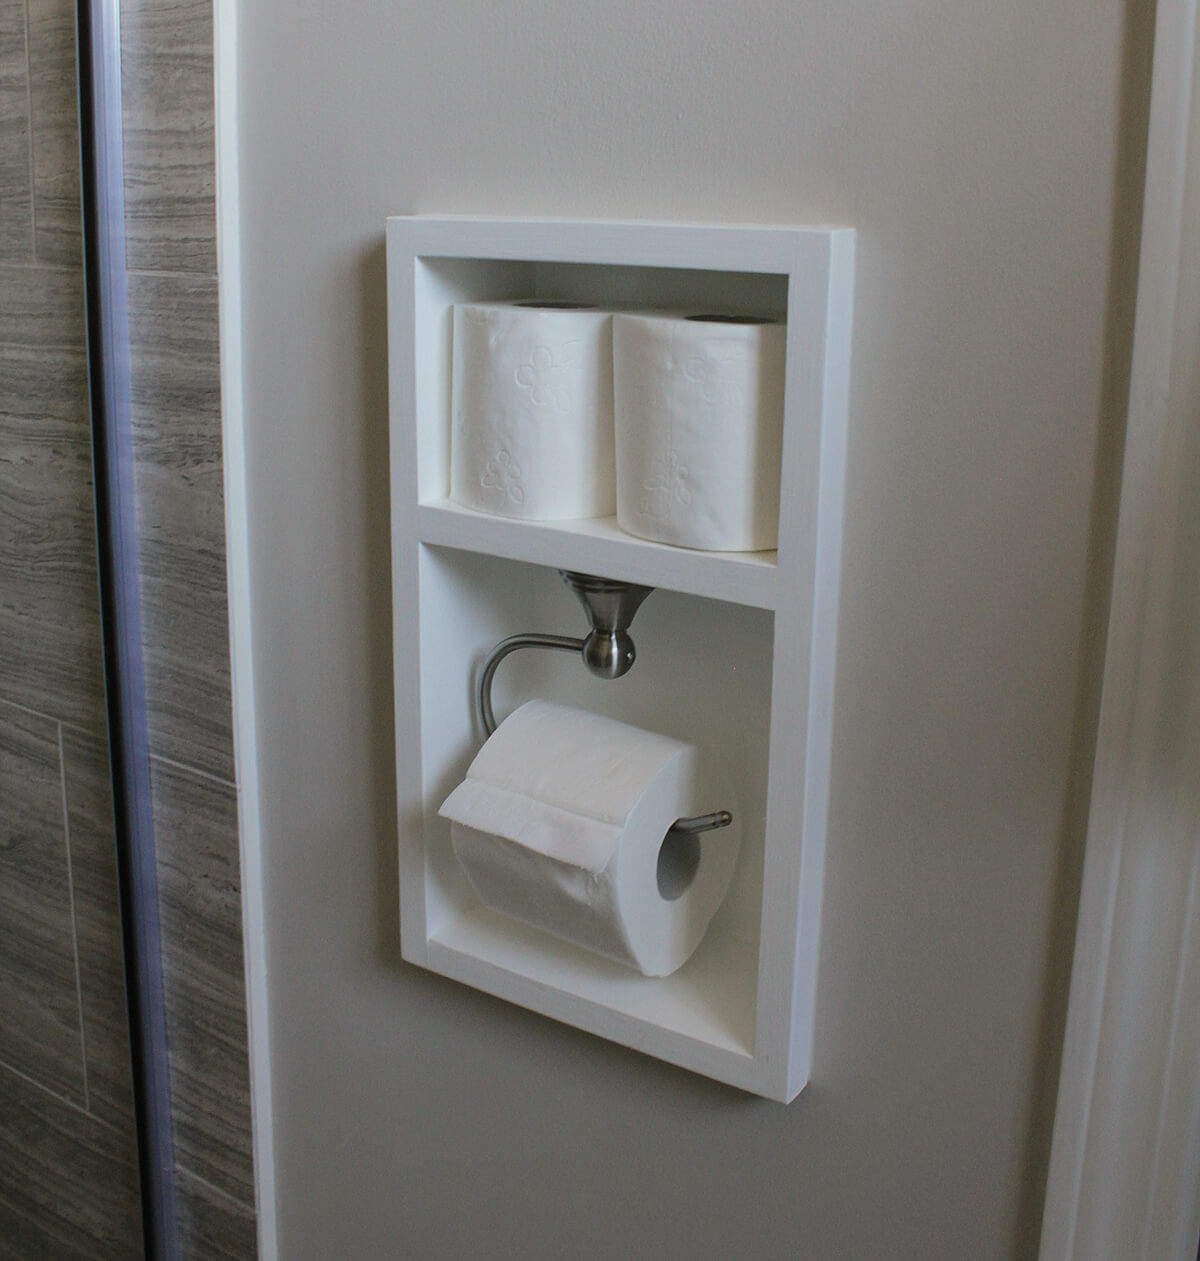 Space Saving Toilet Paper Holder 25 Best Built In Bathroom Shelf And Storage Ideas For 2019